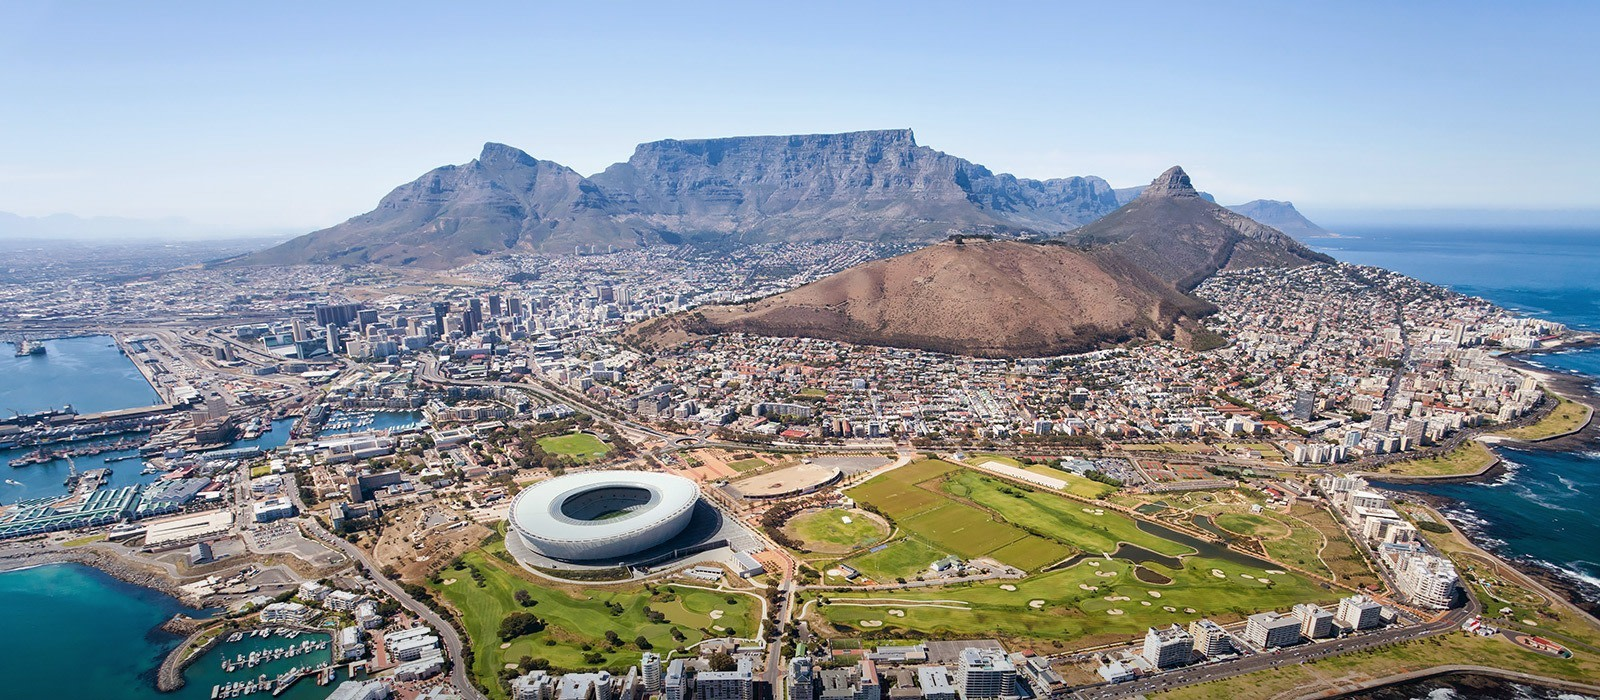 South Africa: Winelands, Garden Route and Eastern Cape Tour Trip 1